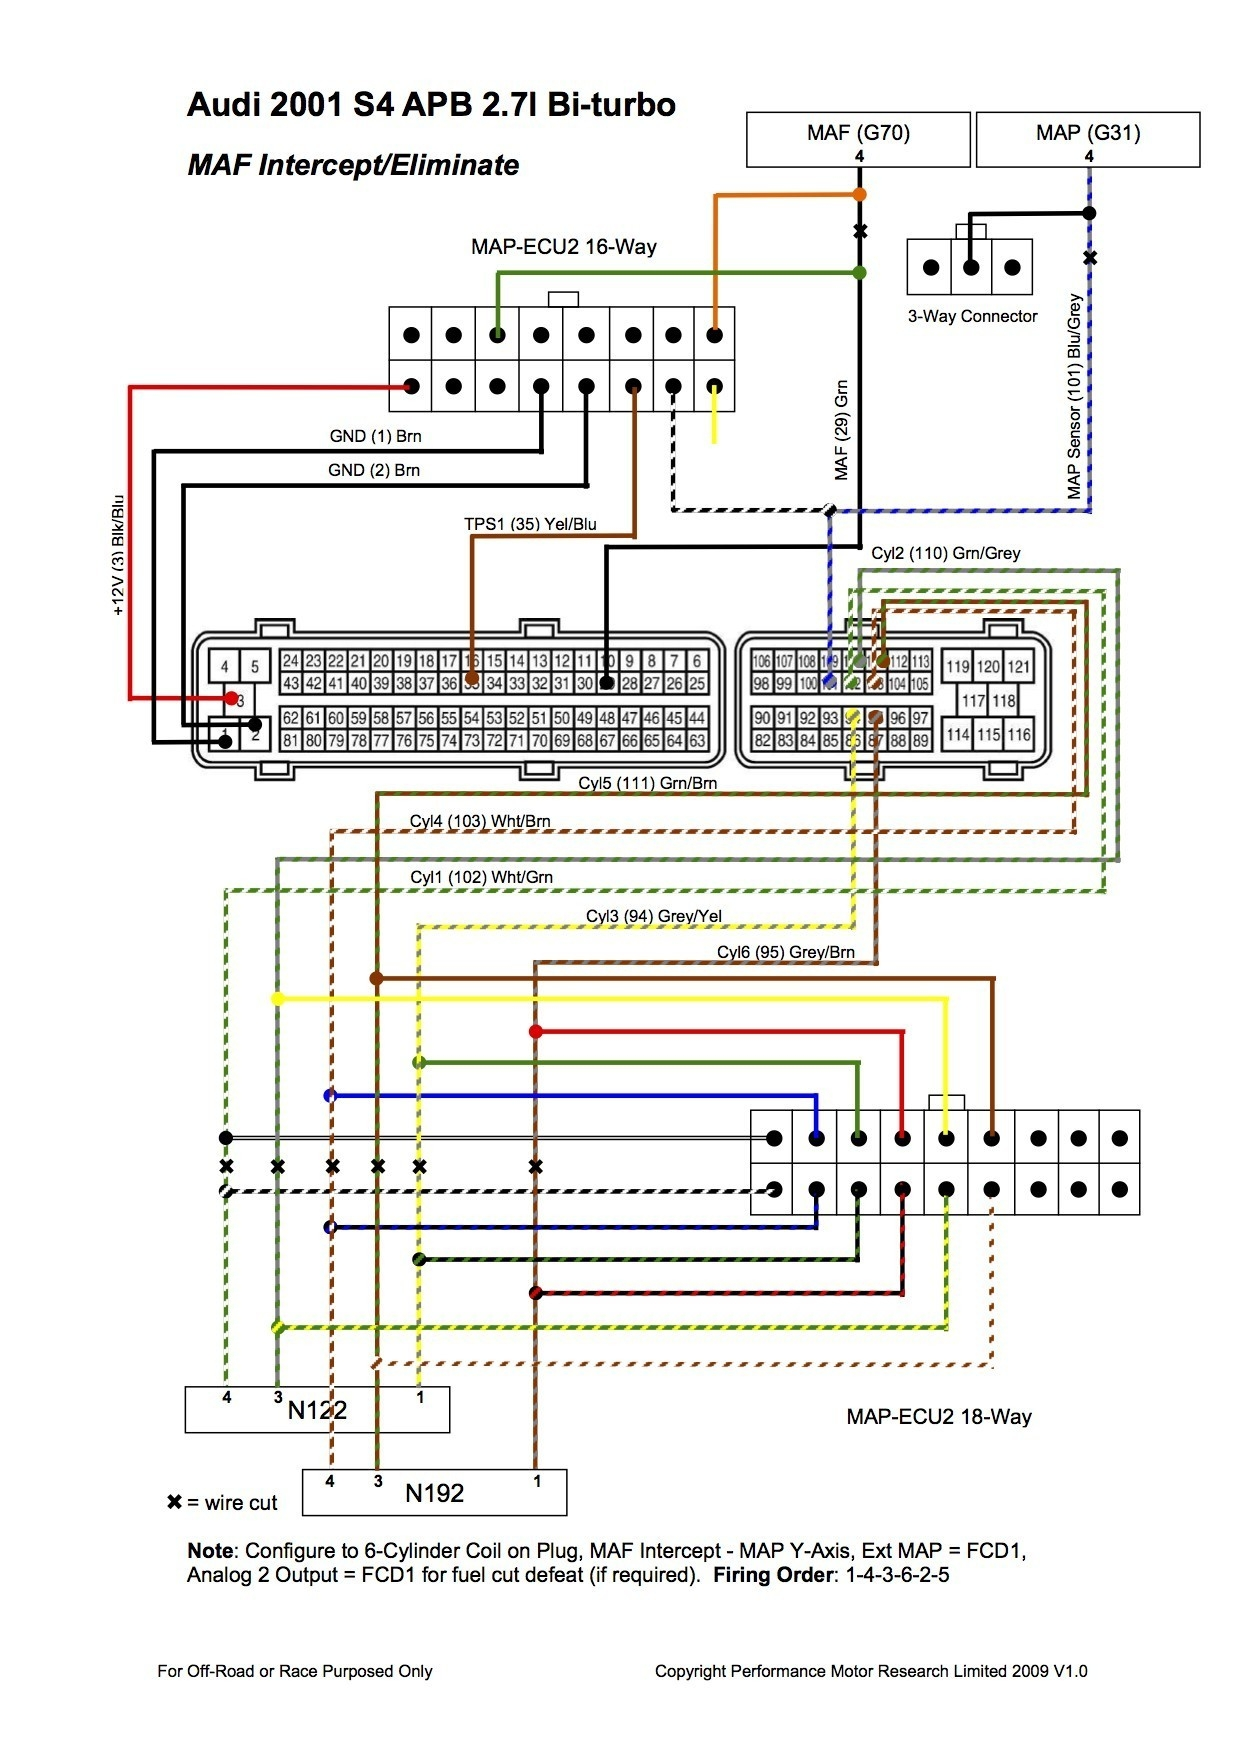 2006 Dodge Ram Radio Wiring Diagram